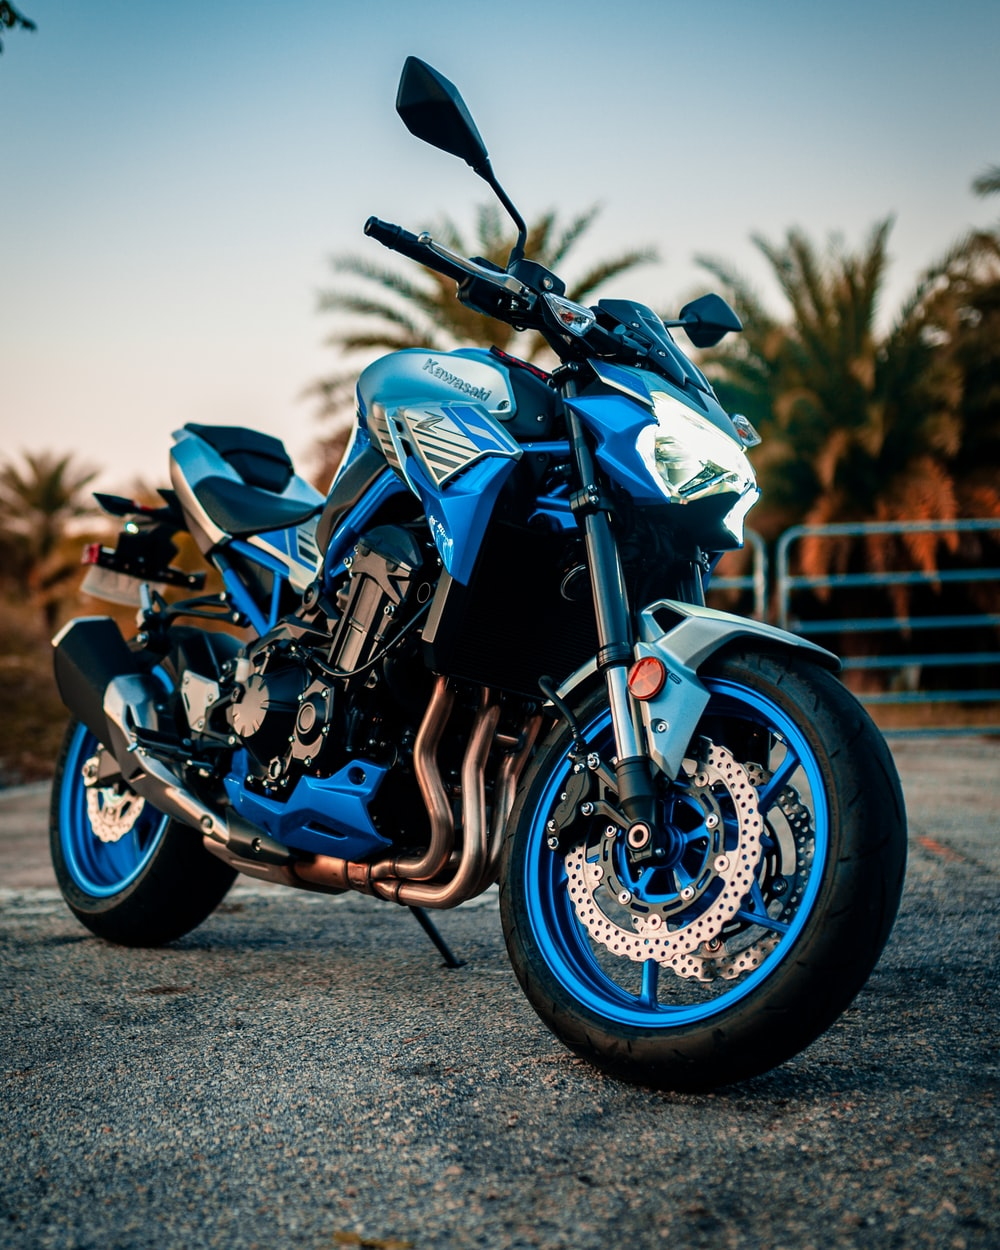 blue and black sports bike on road during daytime